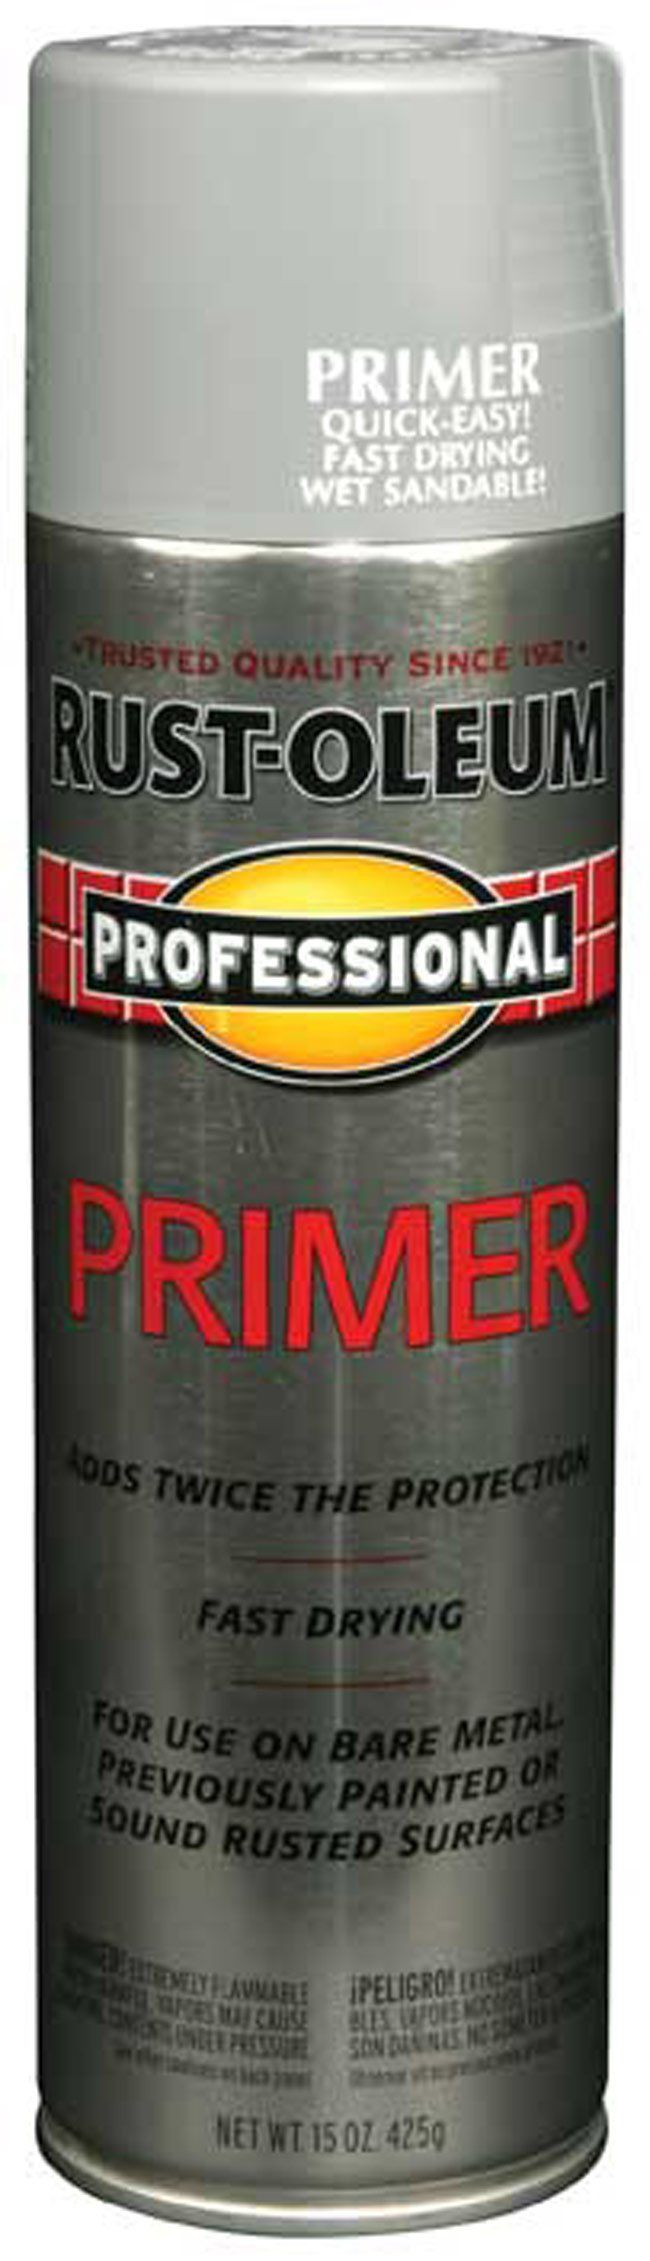 Rust-Oleum Professional Primer Spray Paint, use on outdoor metals, then paint over them